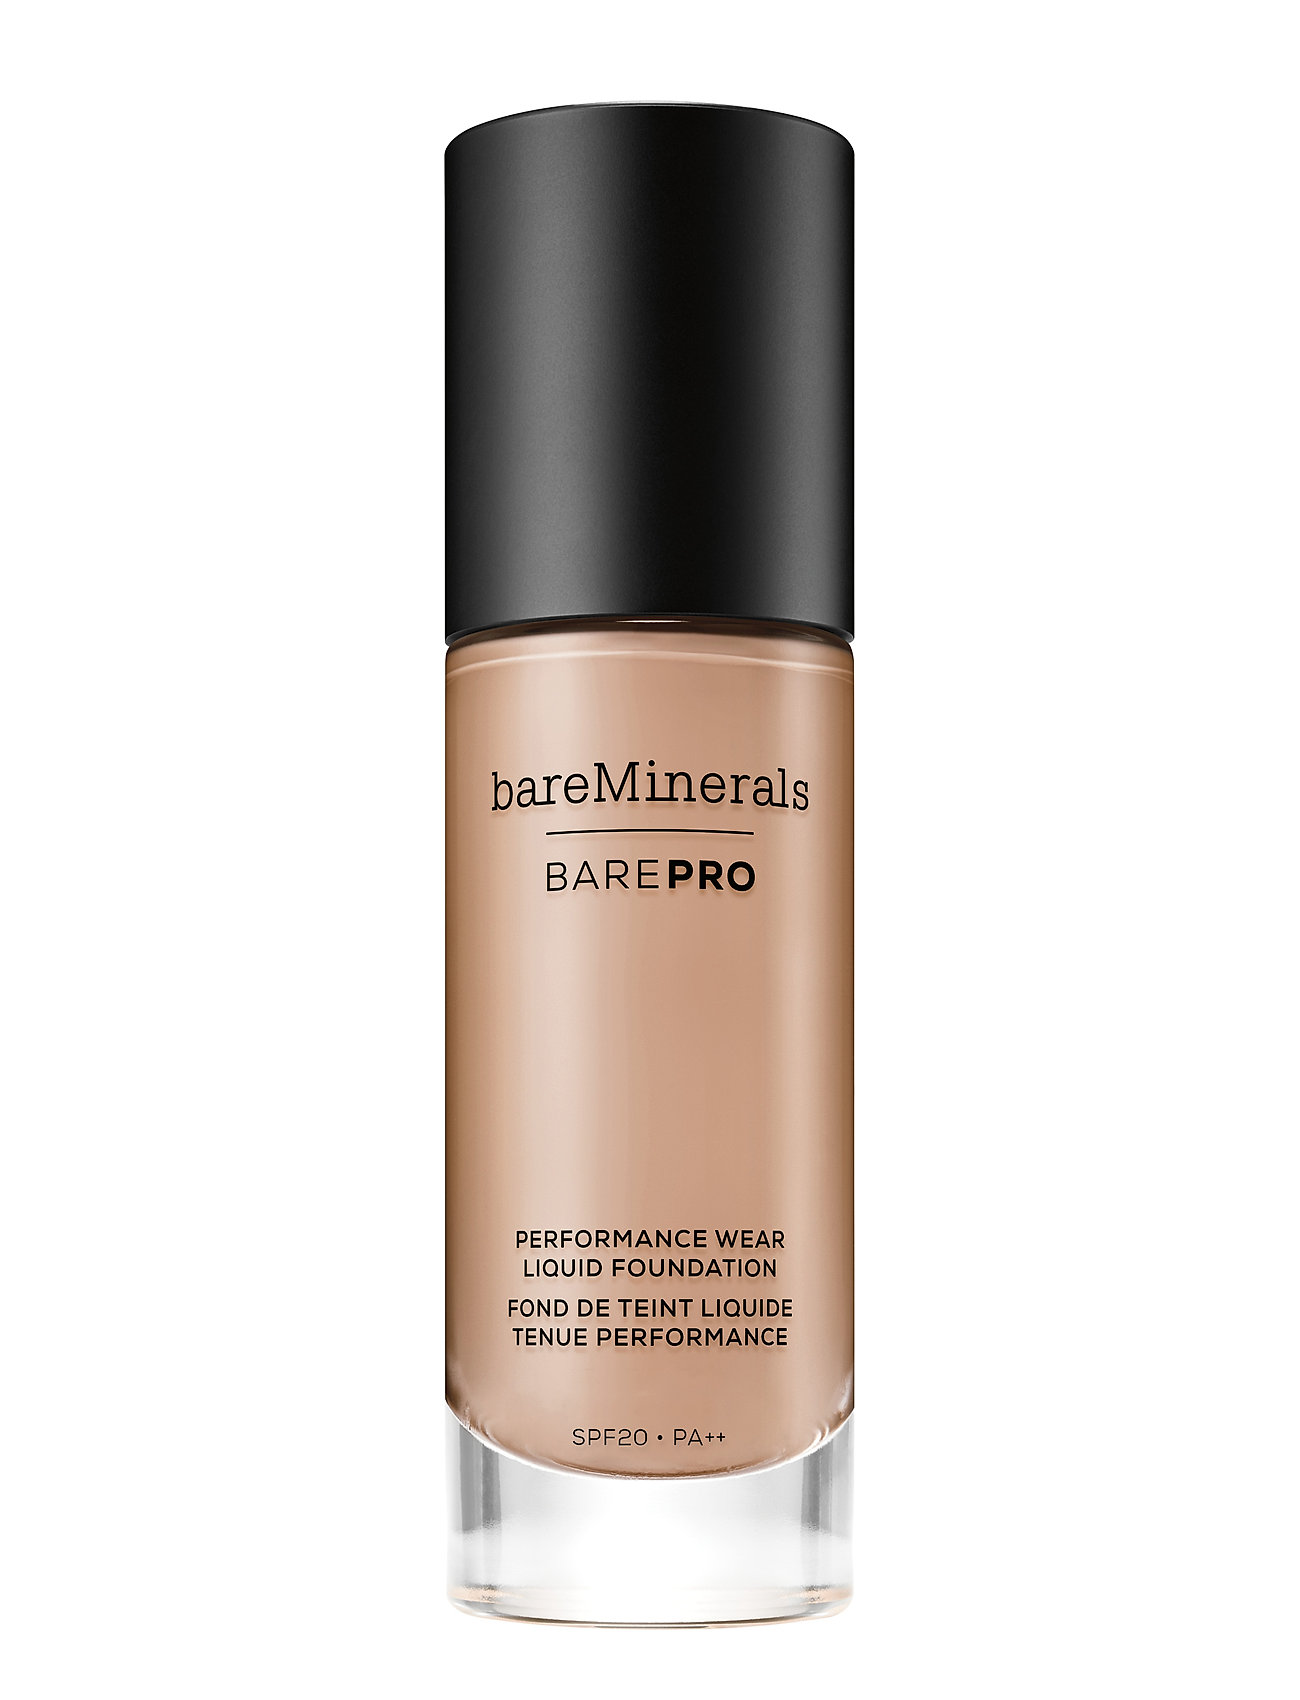 Image of Barepro Performance Wear Liquid Foundation Spf 20 Foundation Makeup BareMinerals (3409849889)